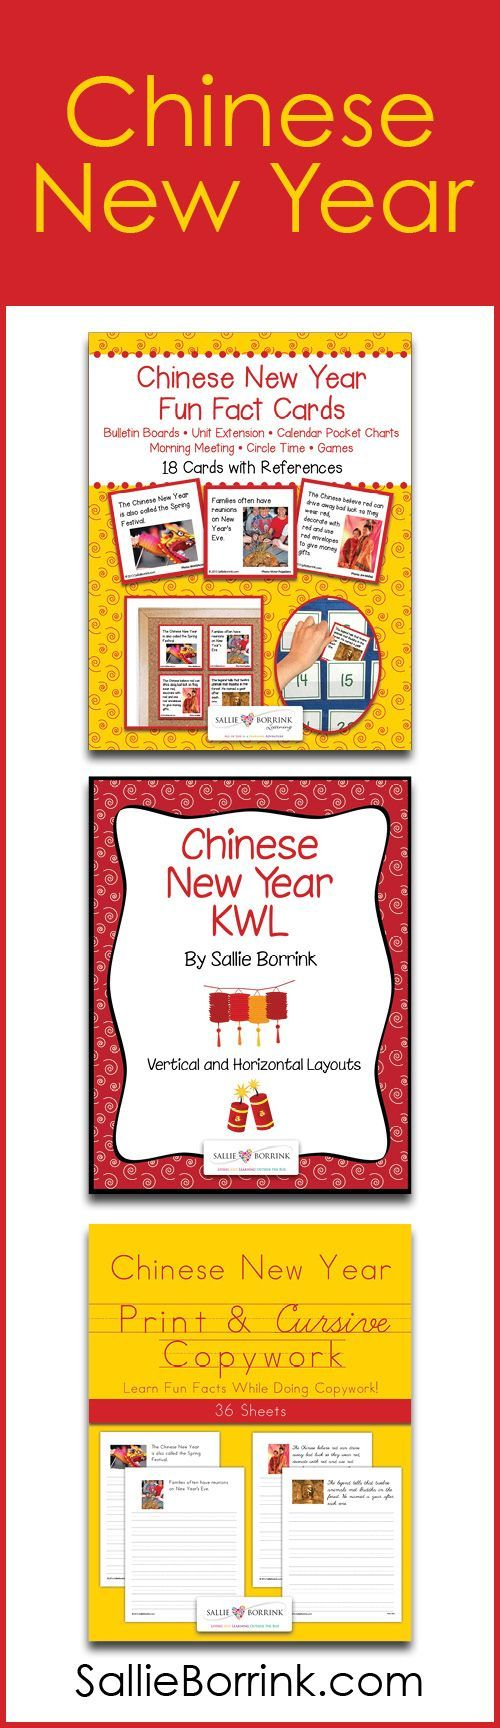 Learn all about Chinese New Year with these fun activities! Your Chinese New Year unit will be full of memorable learning as you explore fun facts with your learners on Fun Fact Cards and with copywork or handwriting. Each product is a great extension to any Chinese New Year unit!